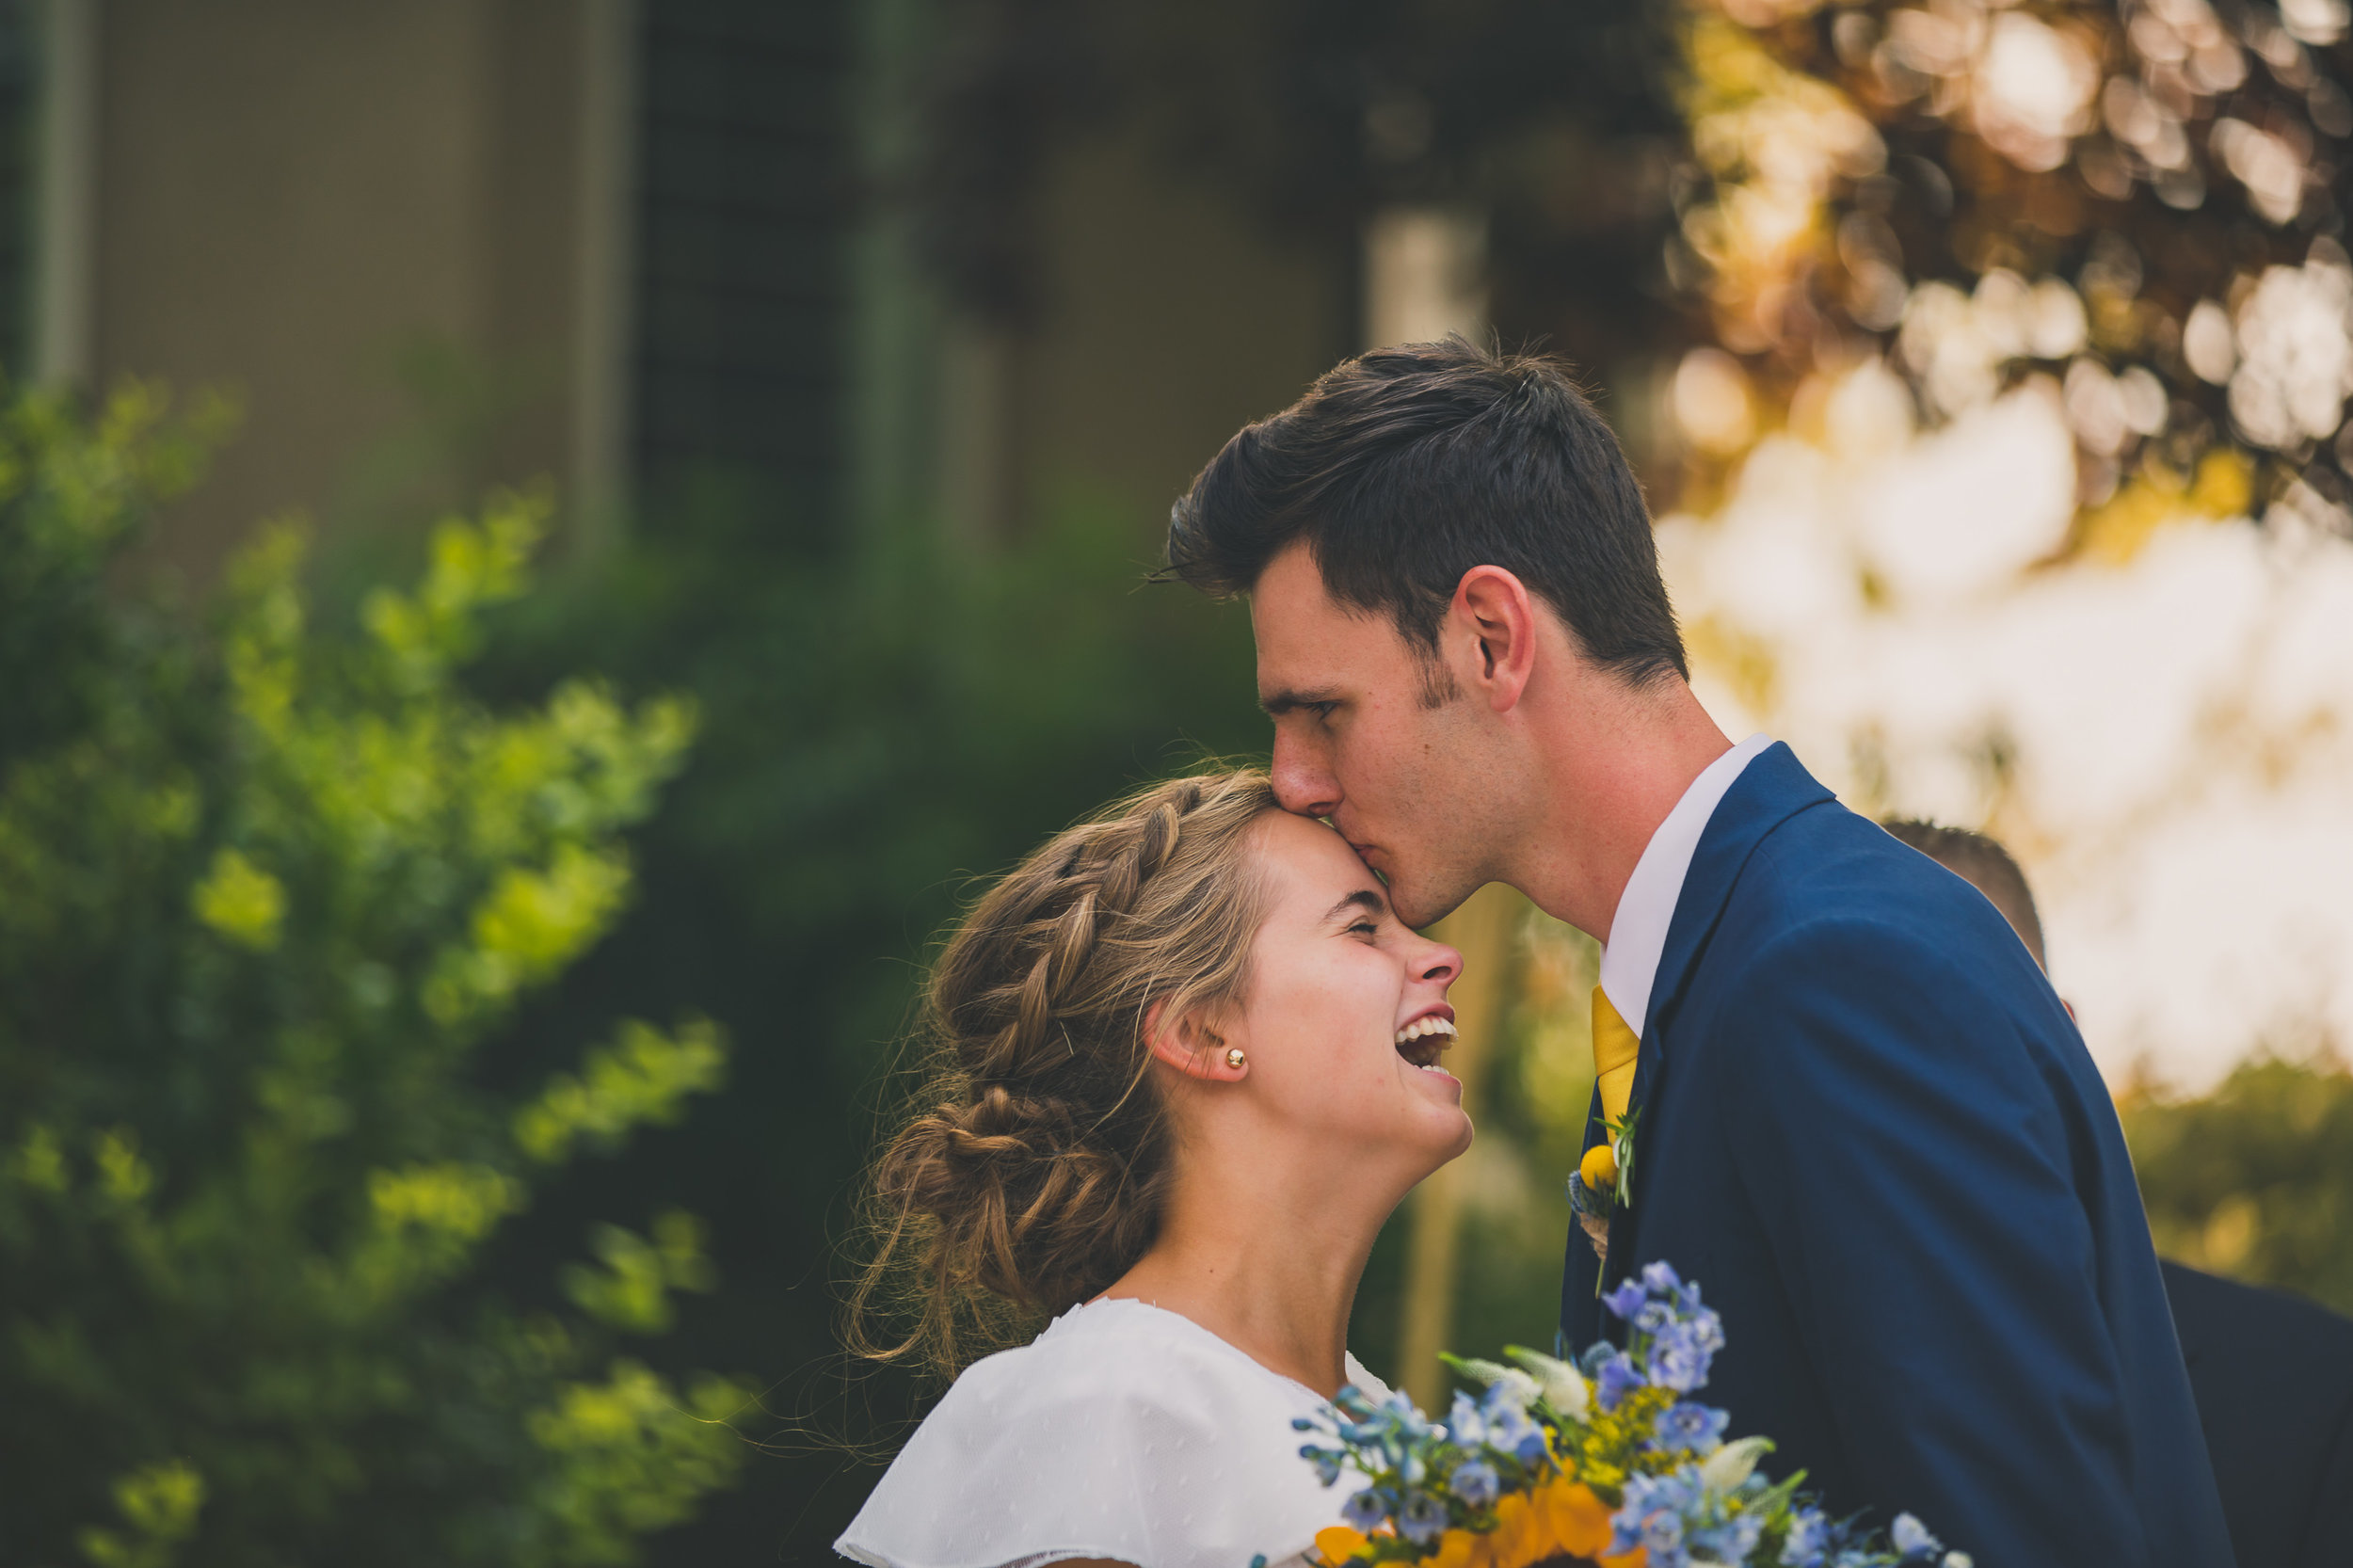 SydneyAndrew_Wed584.jpg